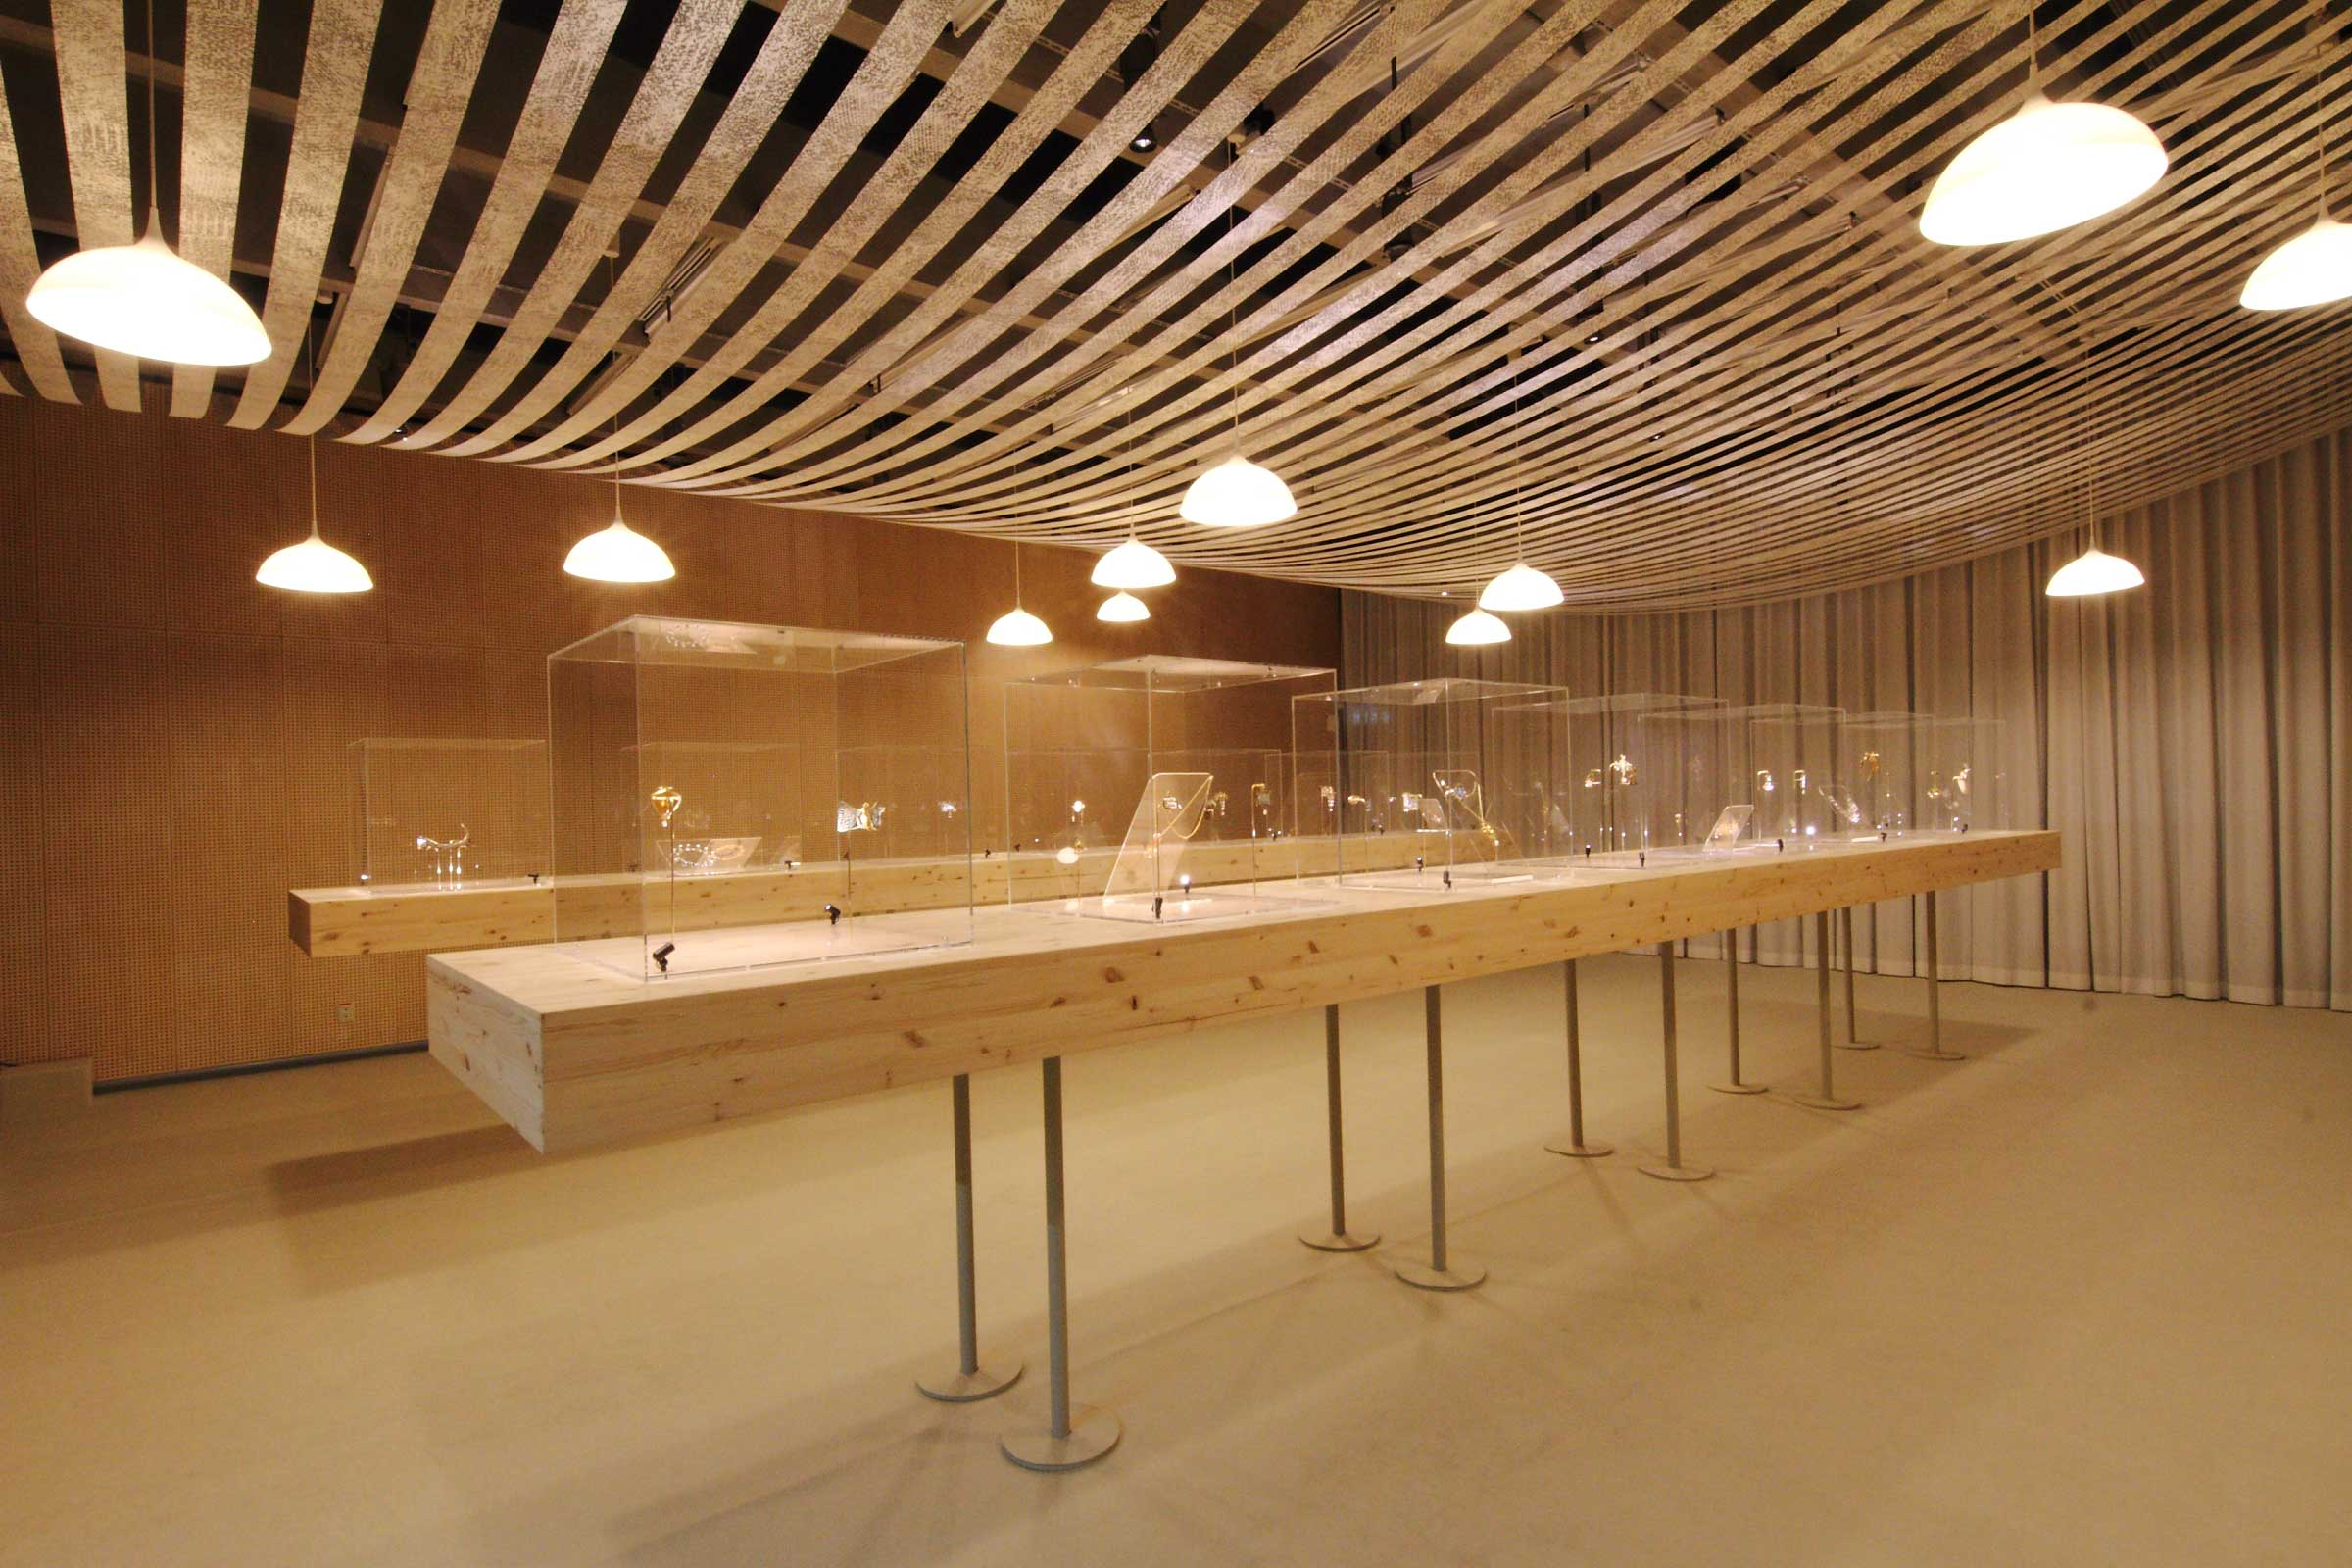 L'ECOLE School of Jewelry Arts in Tokyo. Image courtesy of Van Cleef & Arpels